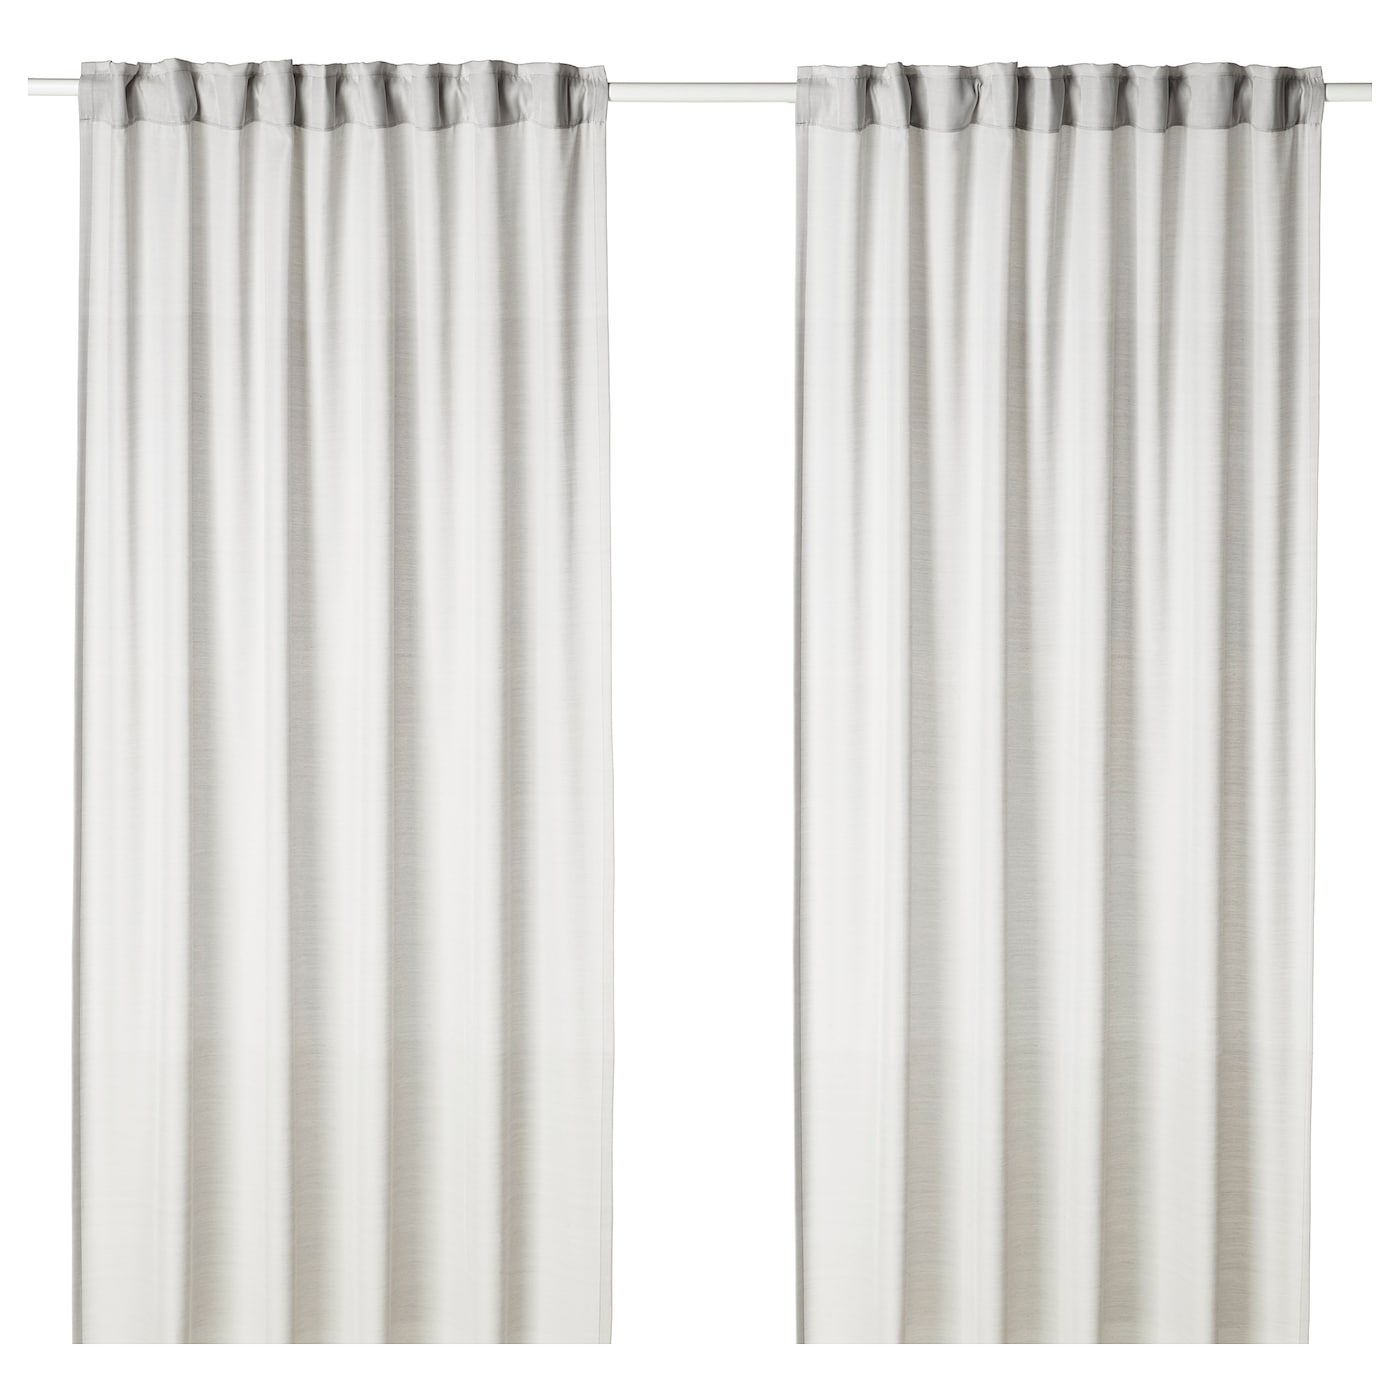 carehomedecor highly blinds lasting protective and long cellular